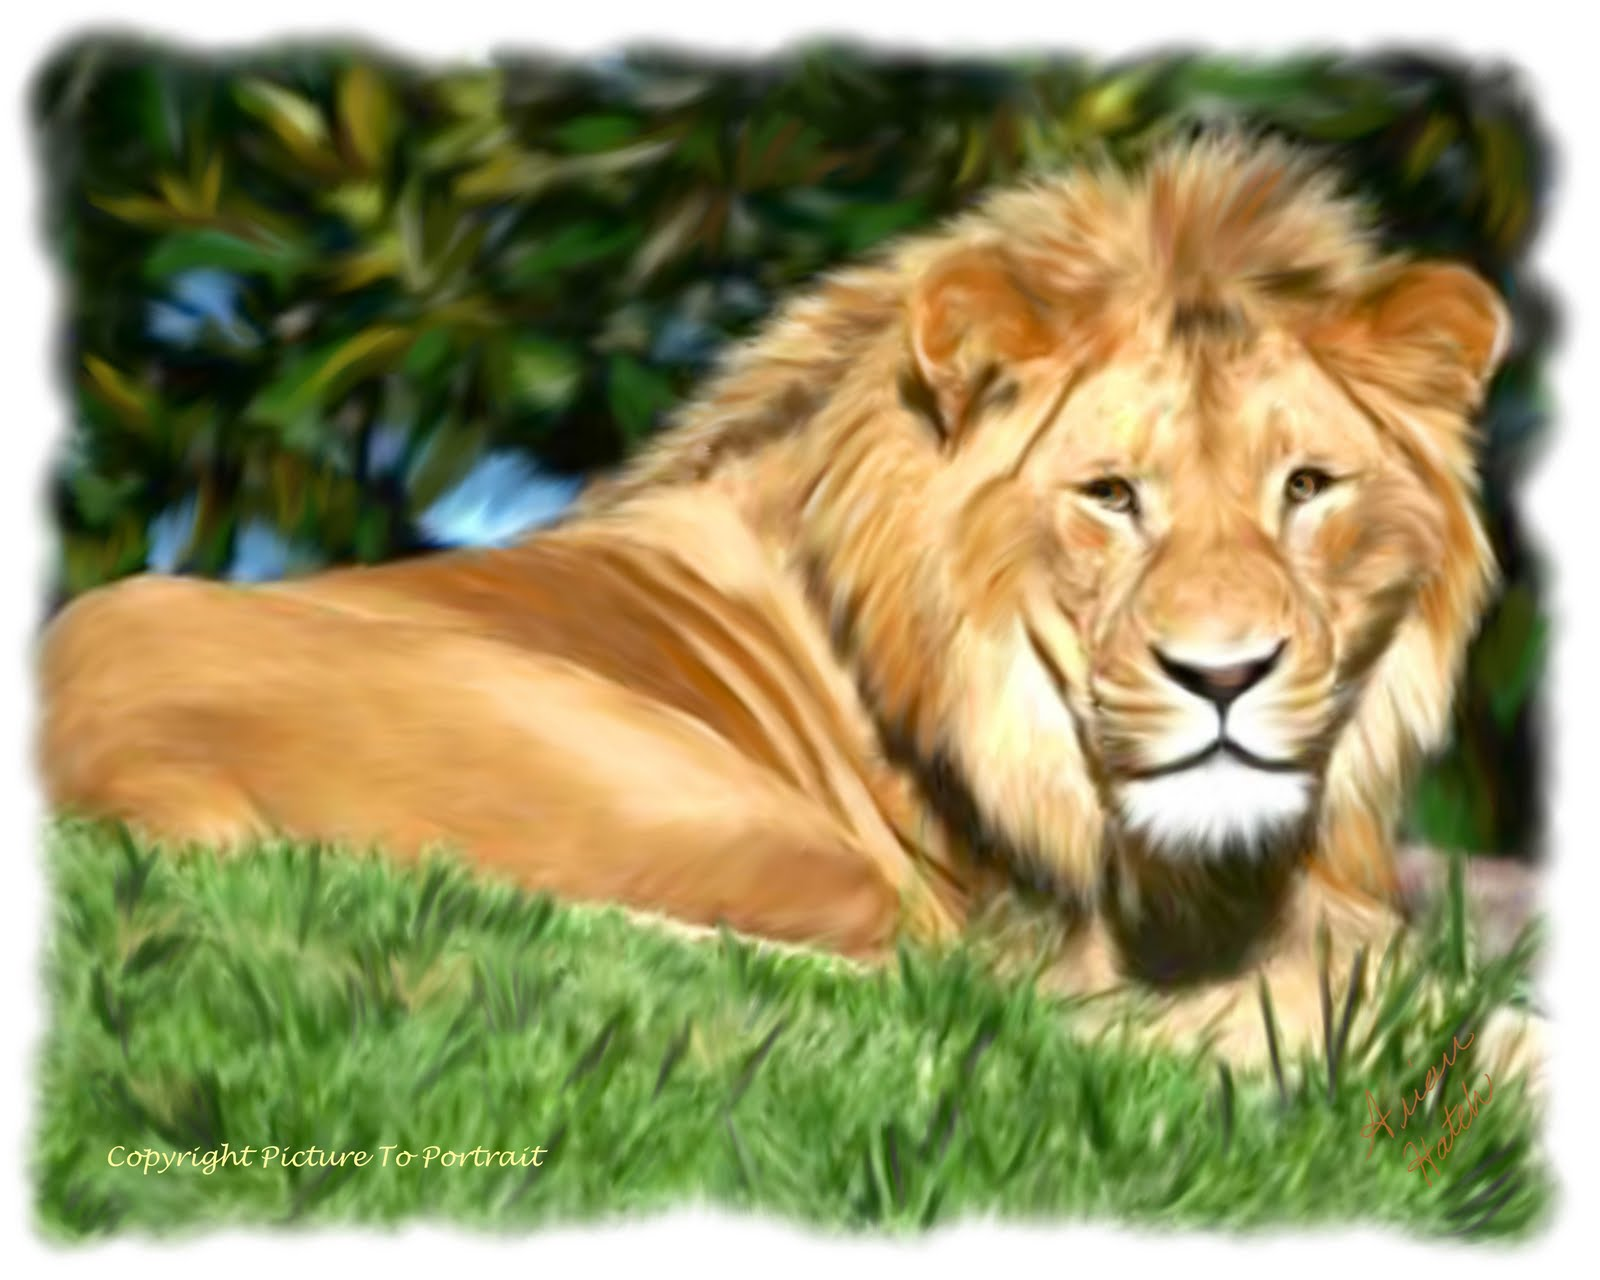 animals letter start animal begin lion am name sure something painted pre